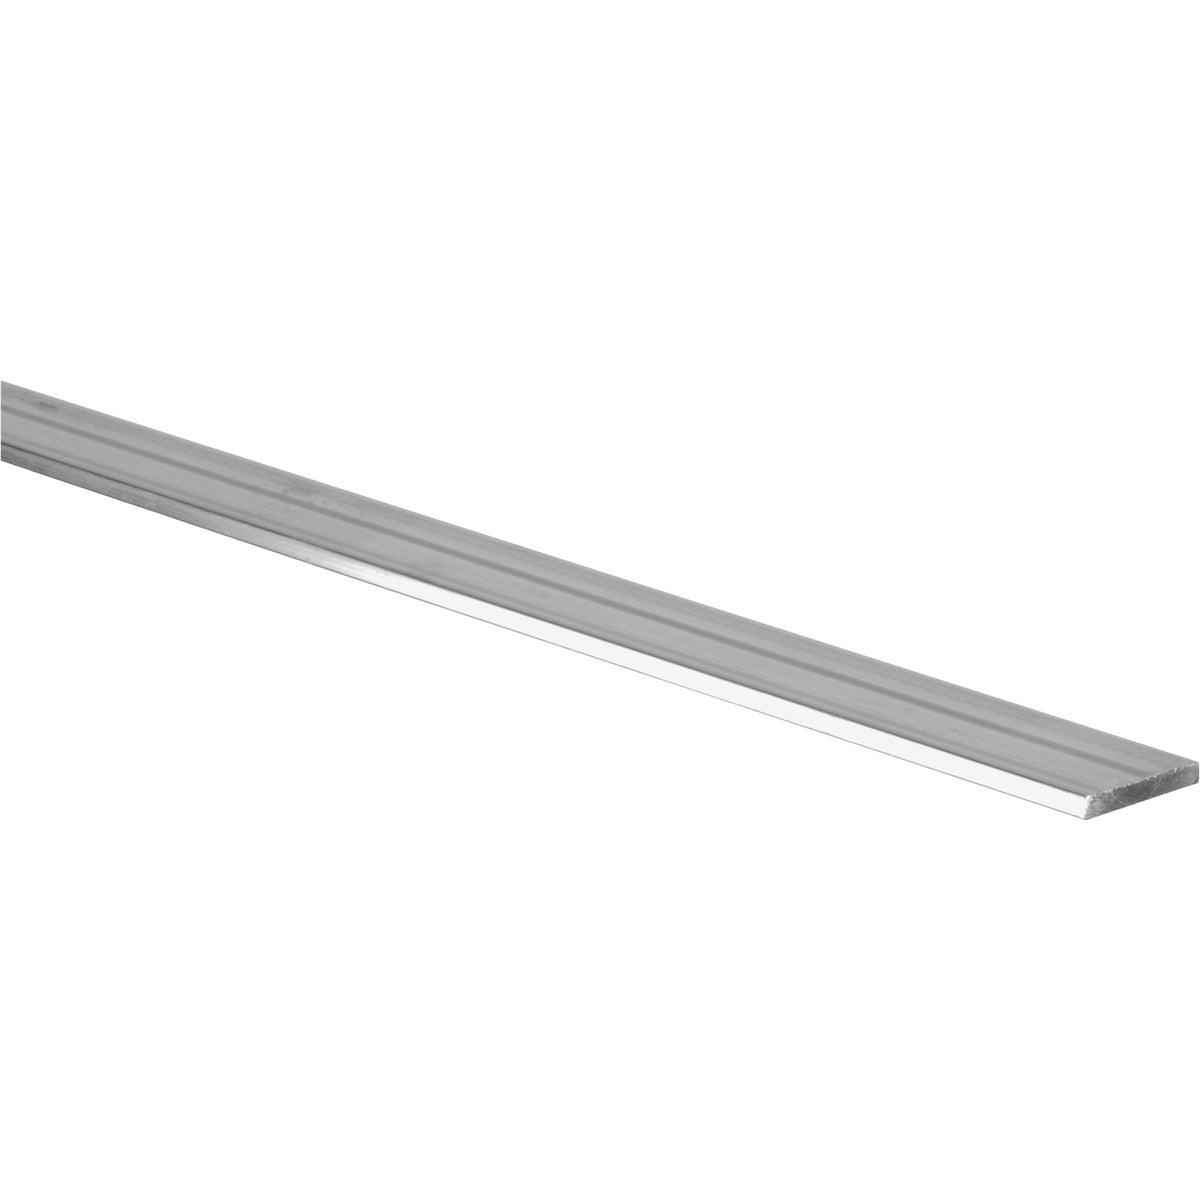 1/8X1X8' ALUMINUM BAR - N258202 by National Mfg Co